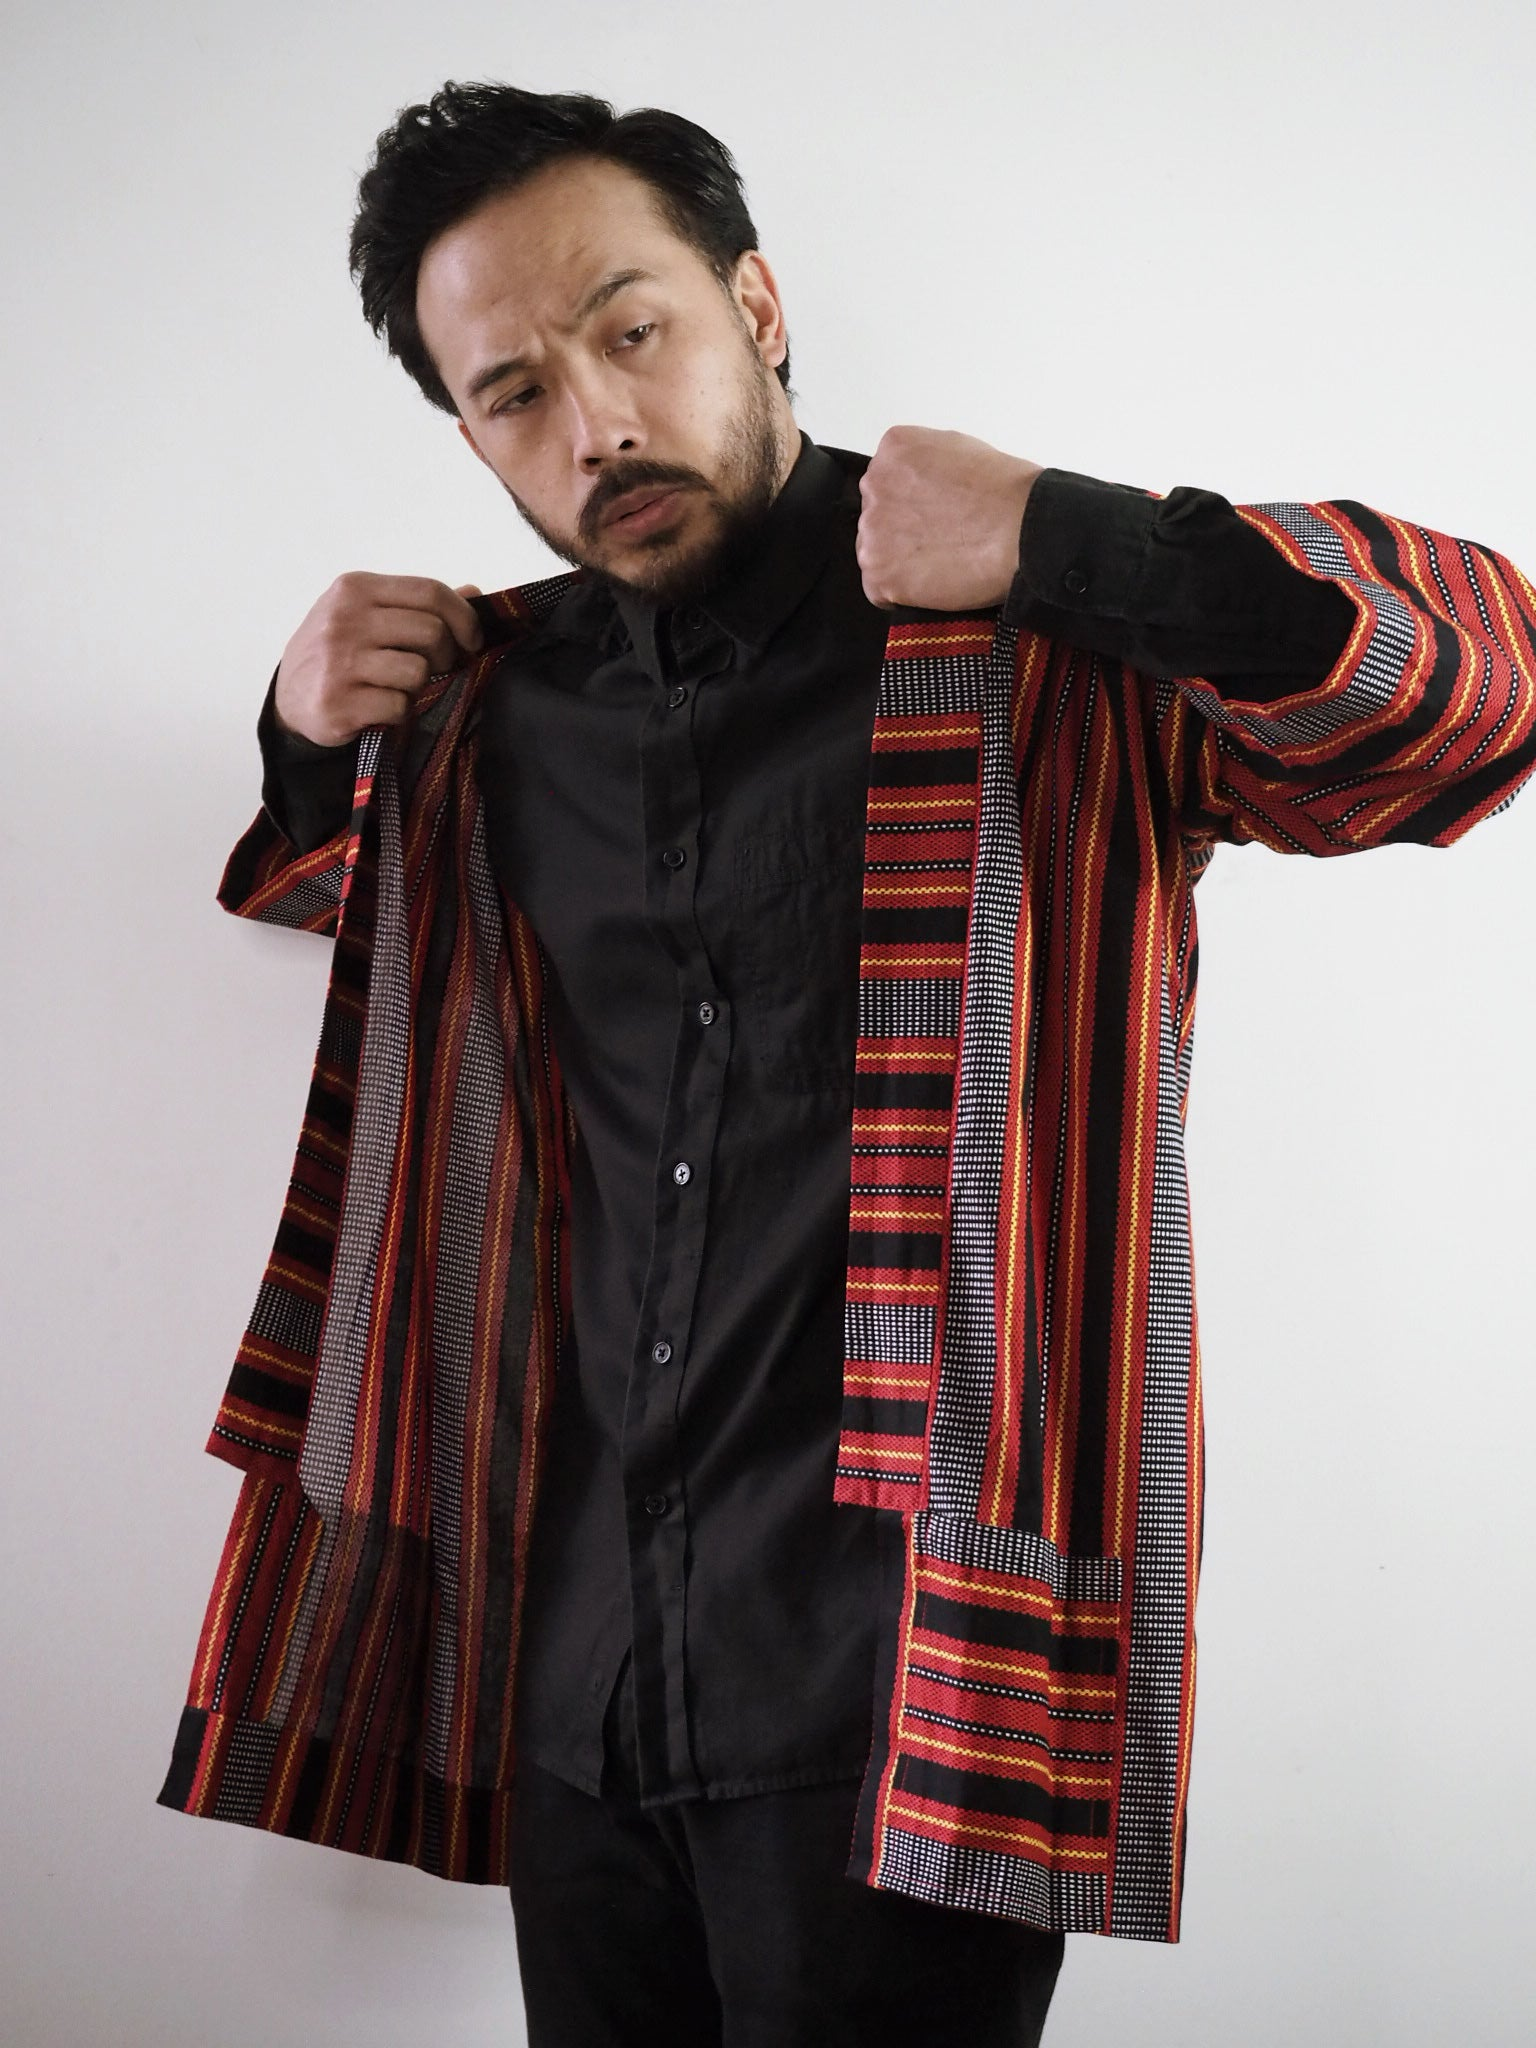 VINTA Unisex Printed Ifugao Jacket on Darrel Lapels Lifted